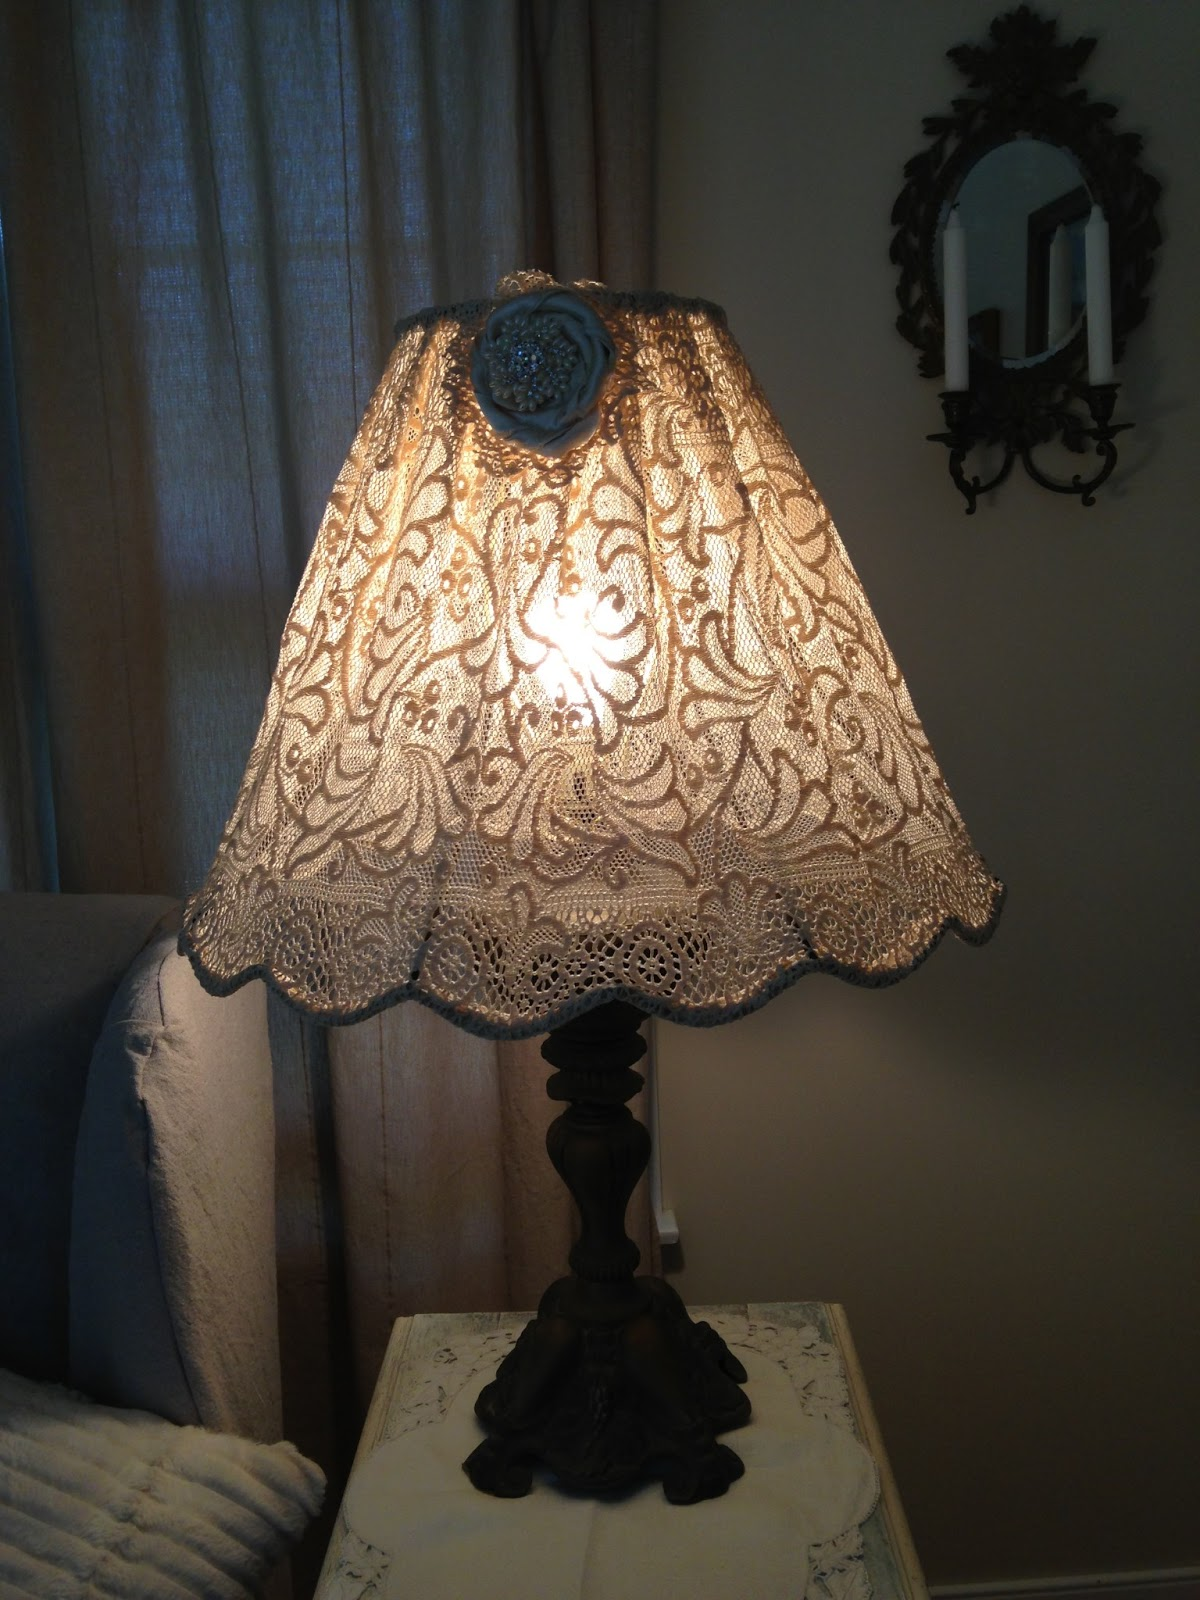 Restored treasures too diy lampshade using an antique lace tablecloth aloadofball Gallery